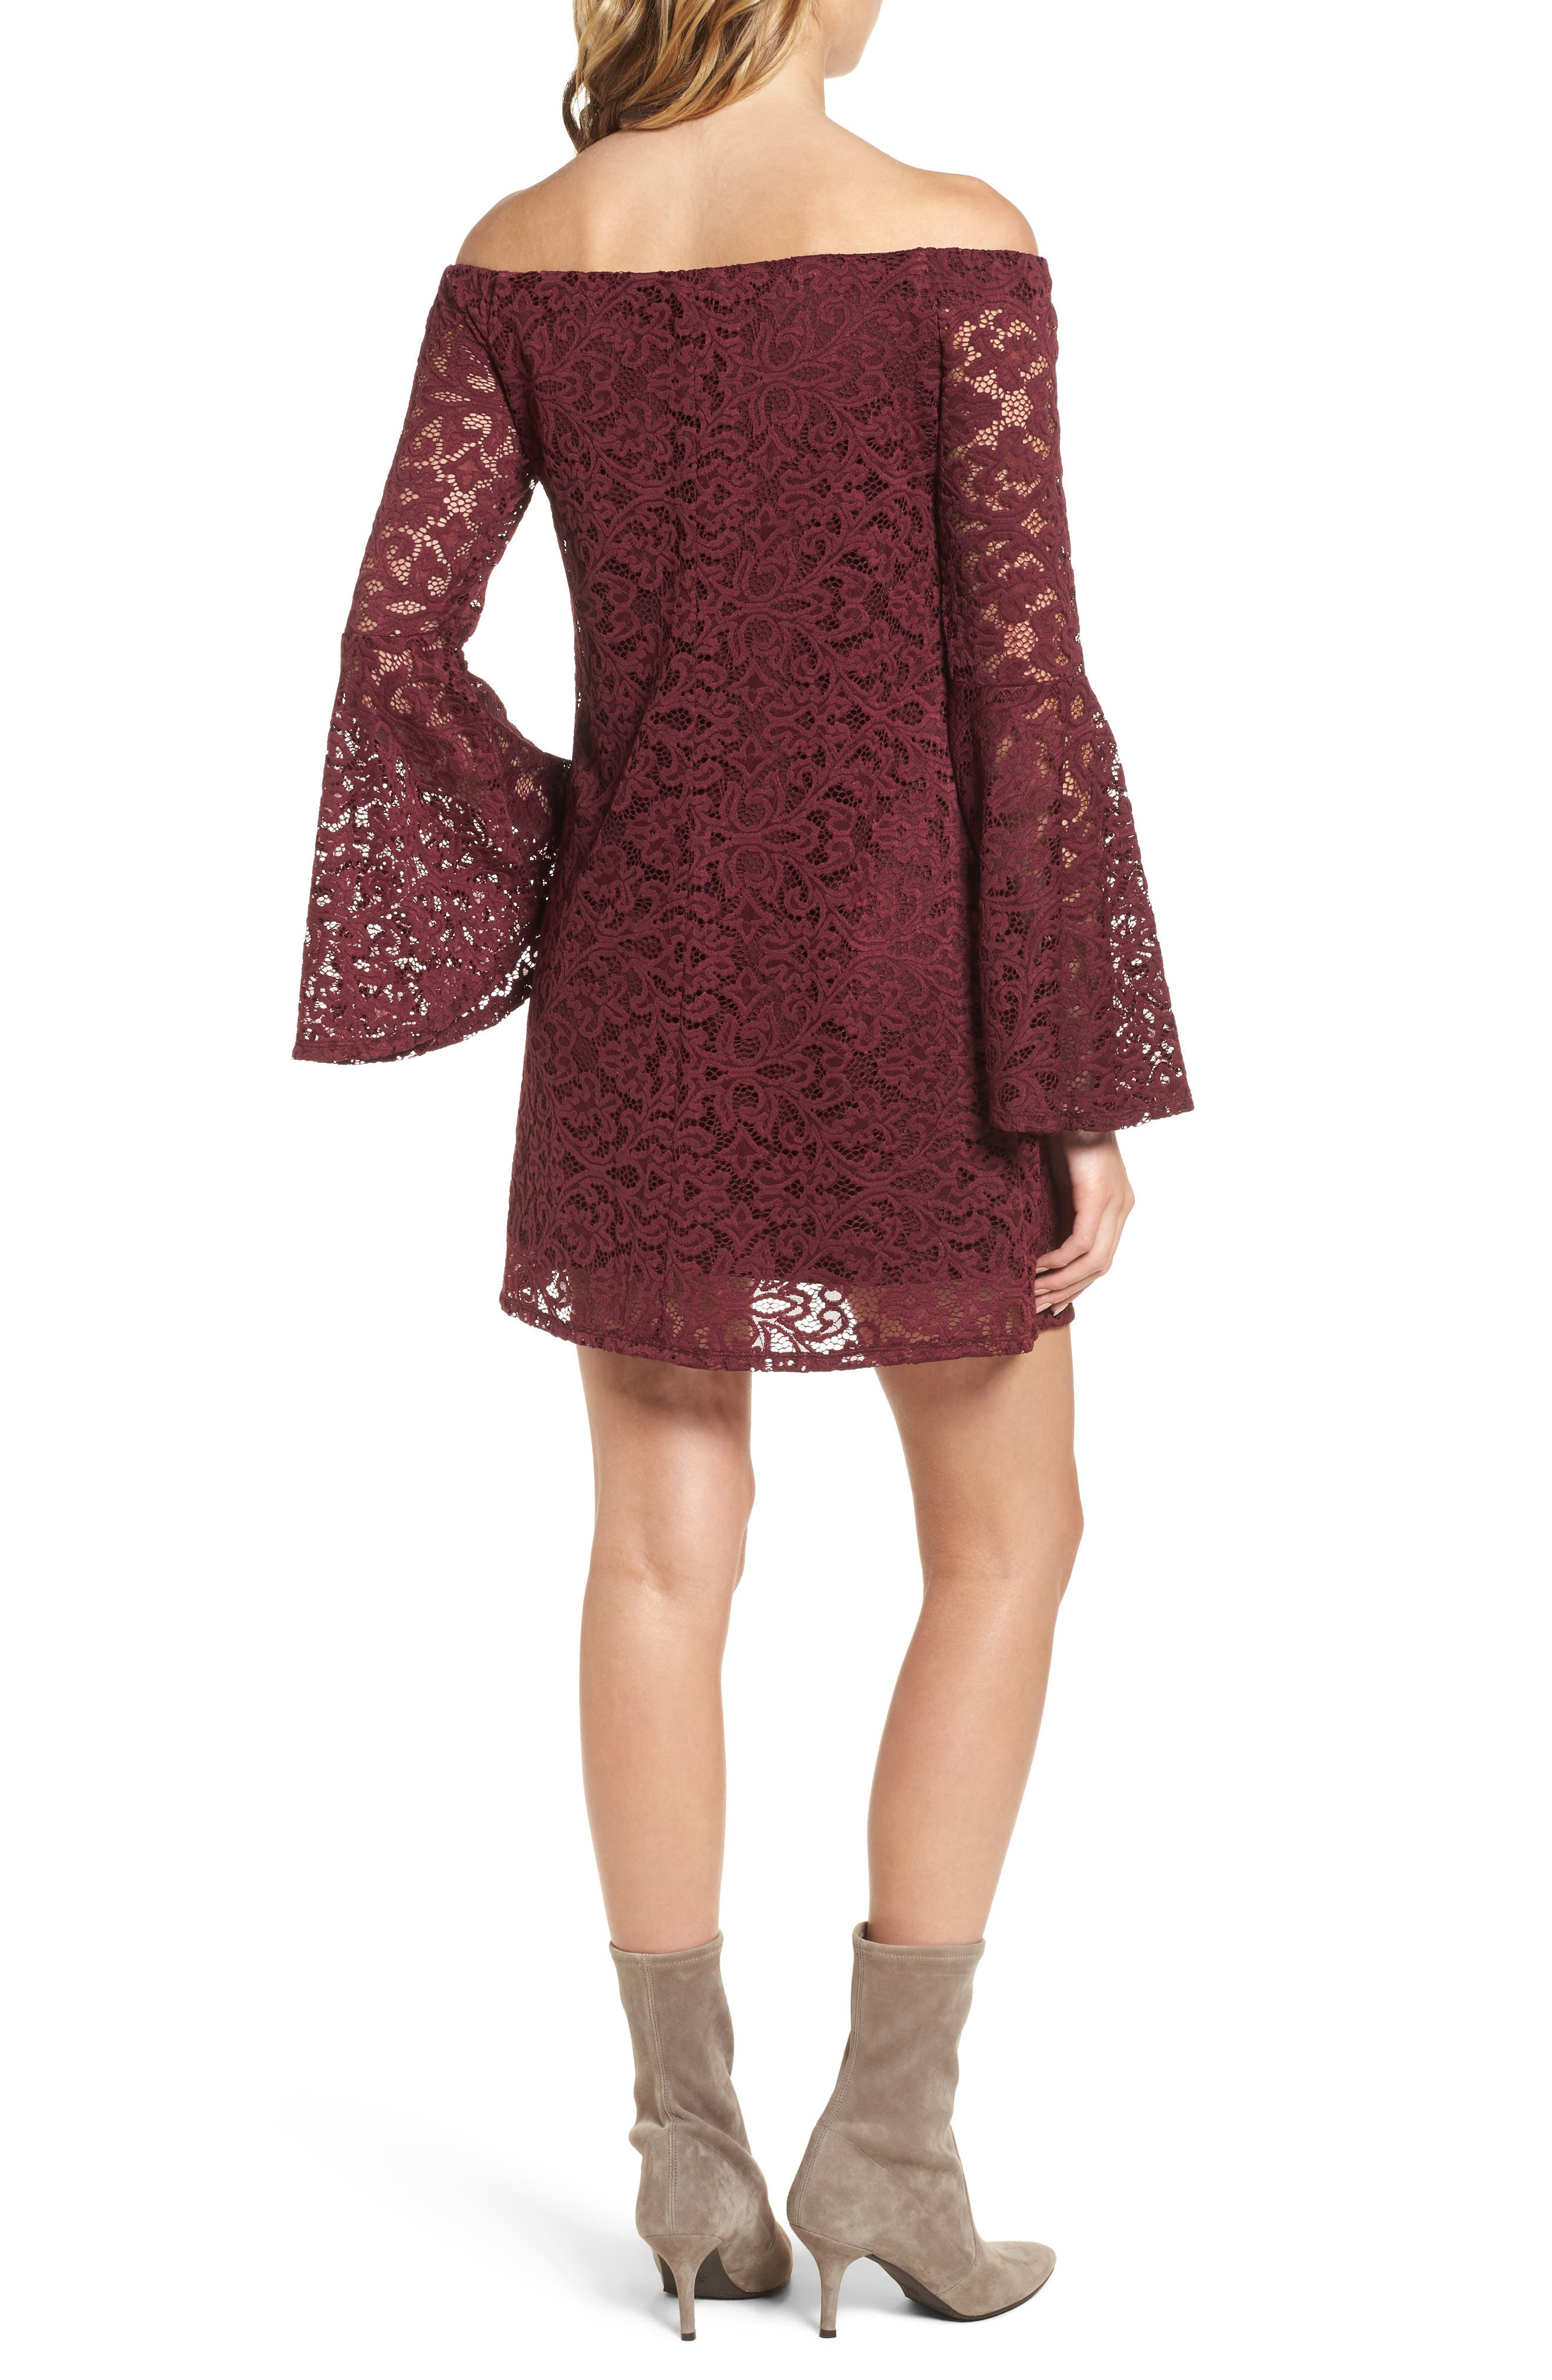 Lace Bell Sleeve Off the Shoulder Dress,                             Alternate thumbnail 2, color,                             930